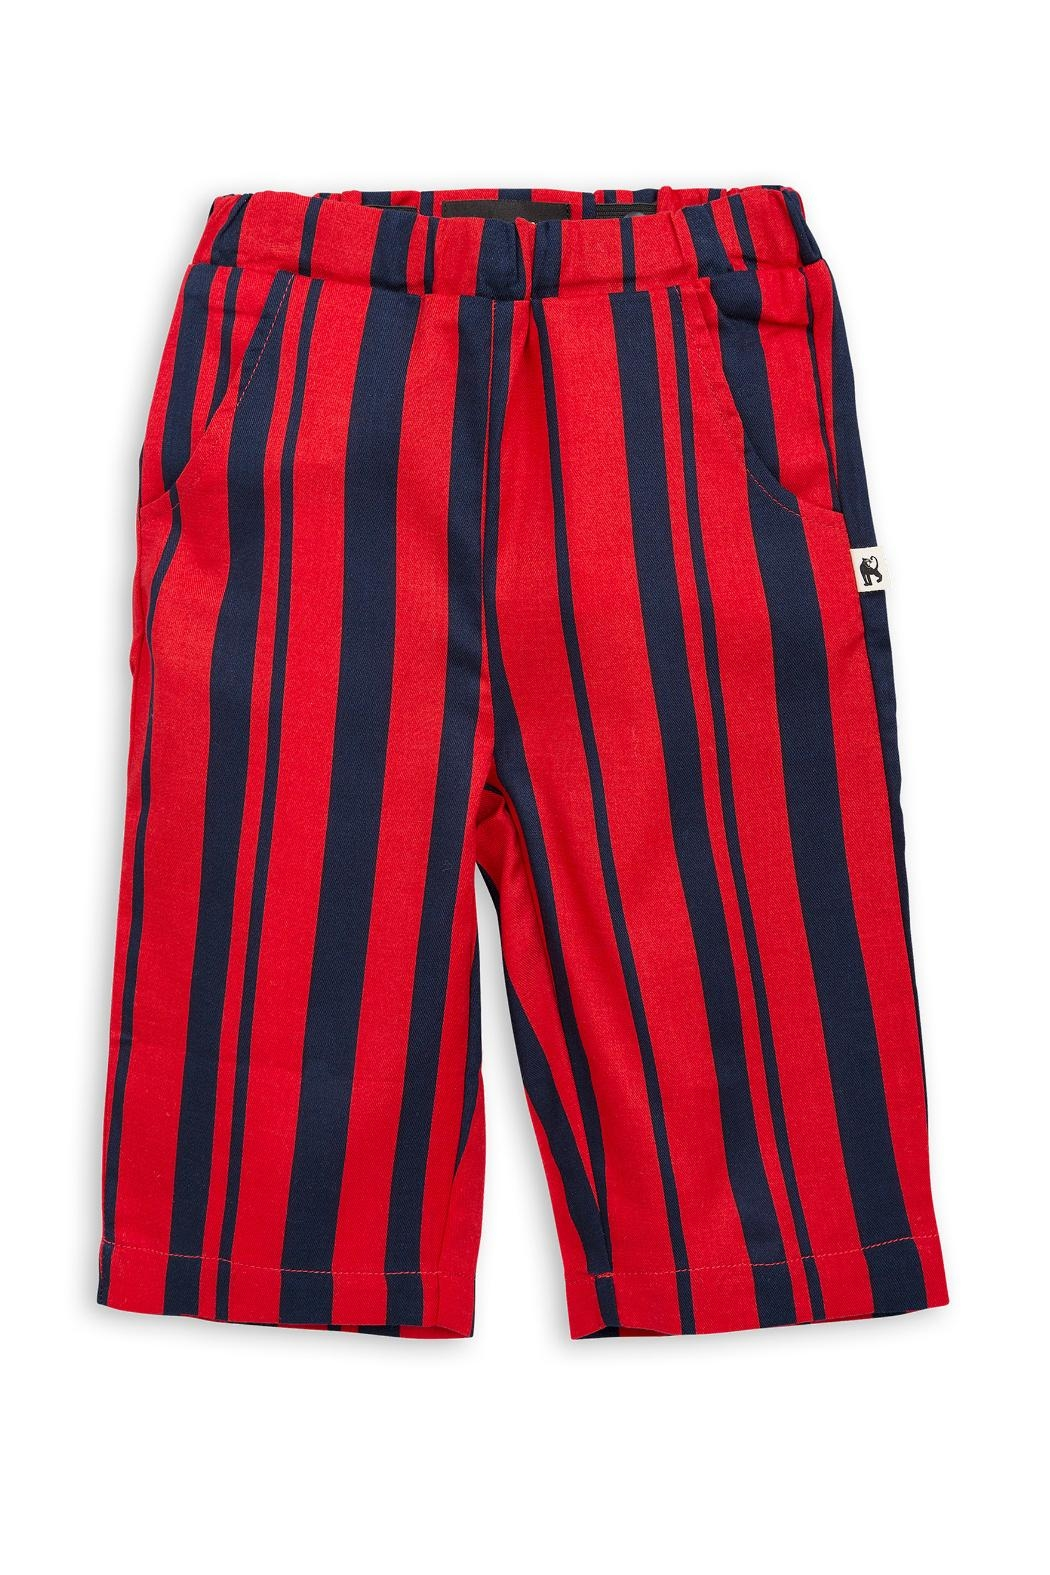 Mini Rodini Odd Stripe Trousers - Main Image